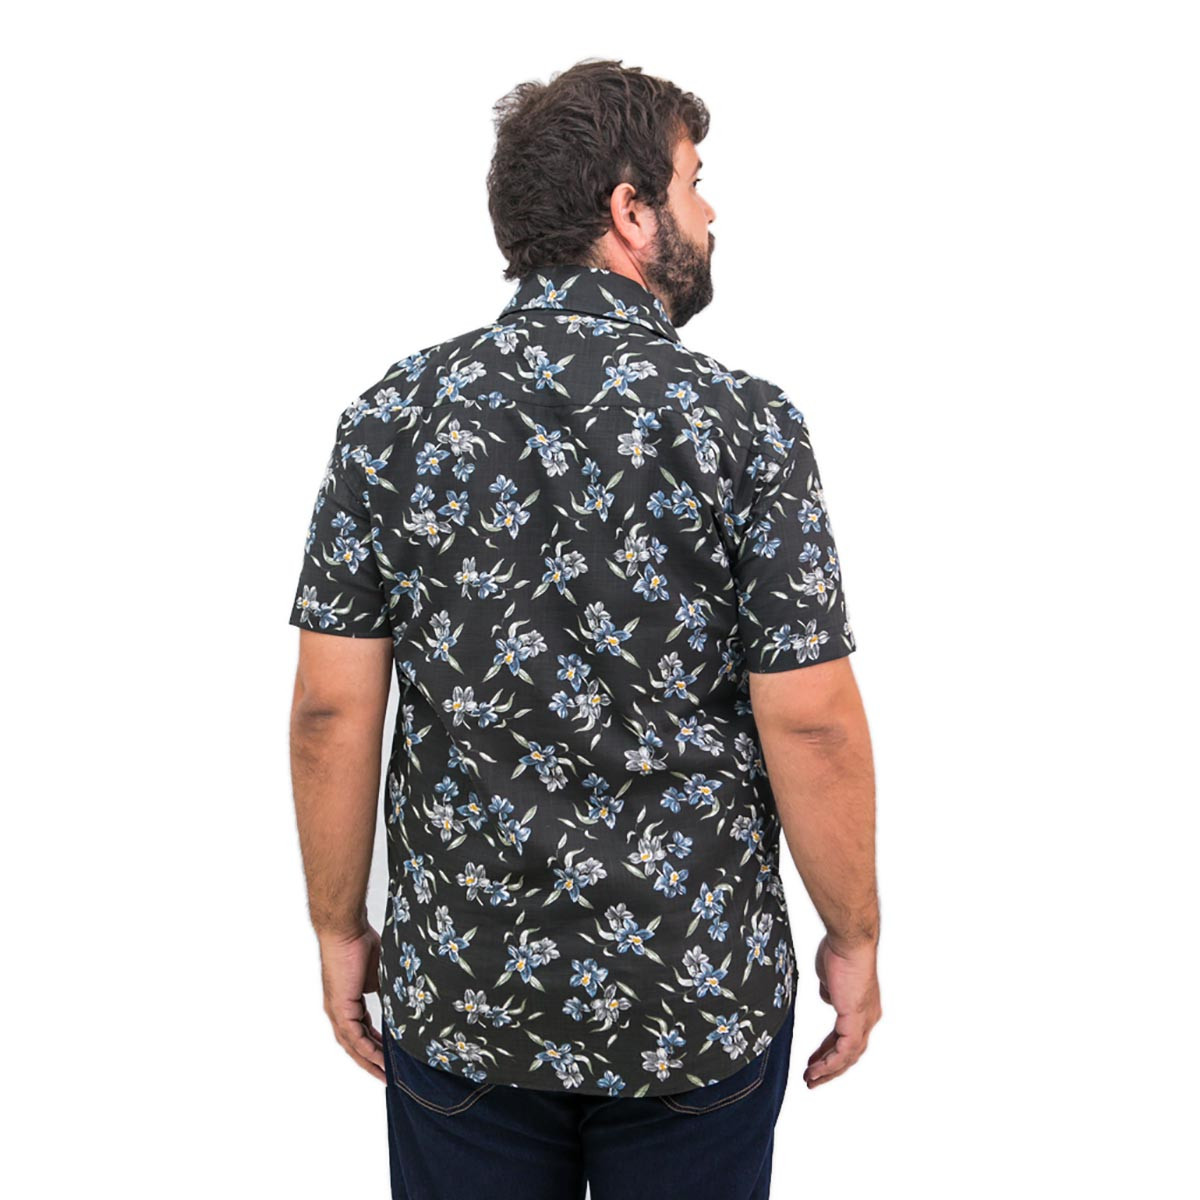 Camisa Plus Size Masculina Flower Black